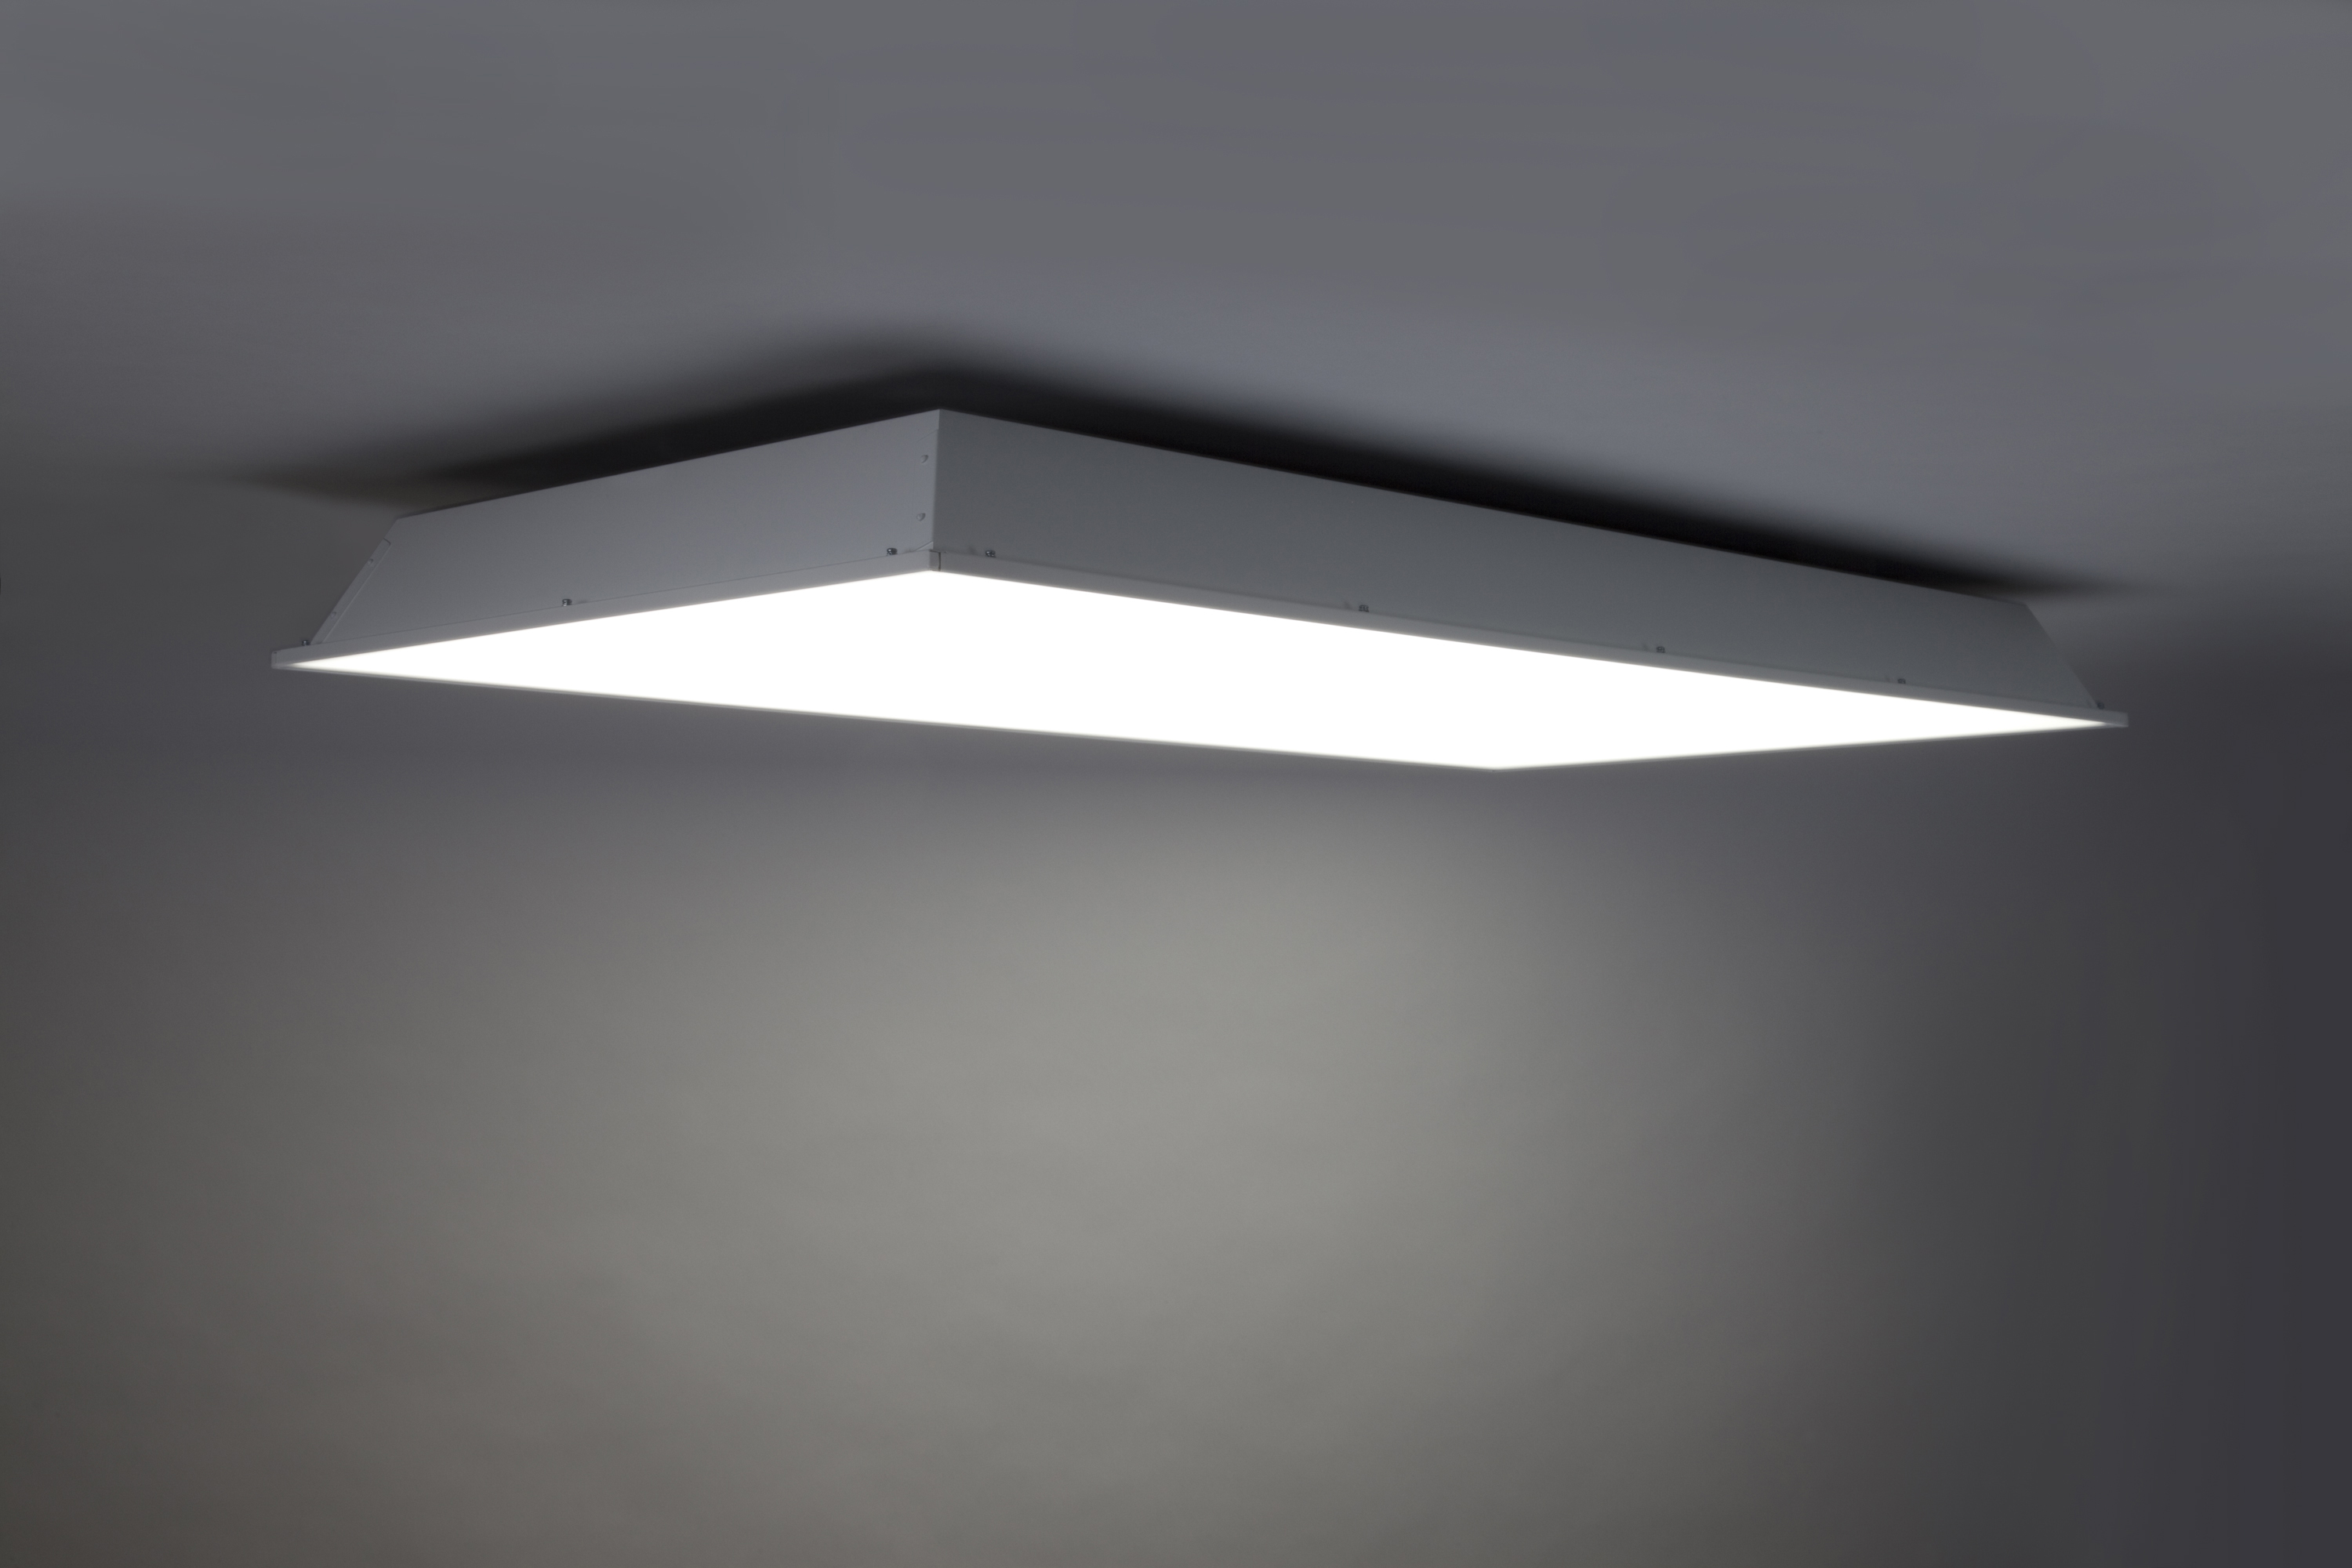 Modern led ceiling lights perfect illumination for your eyes